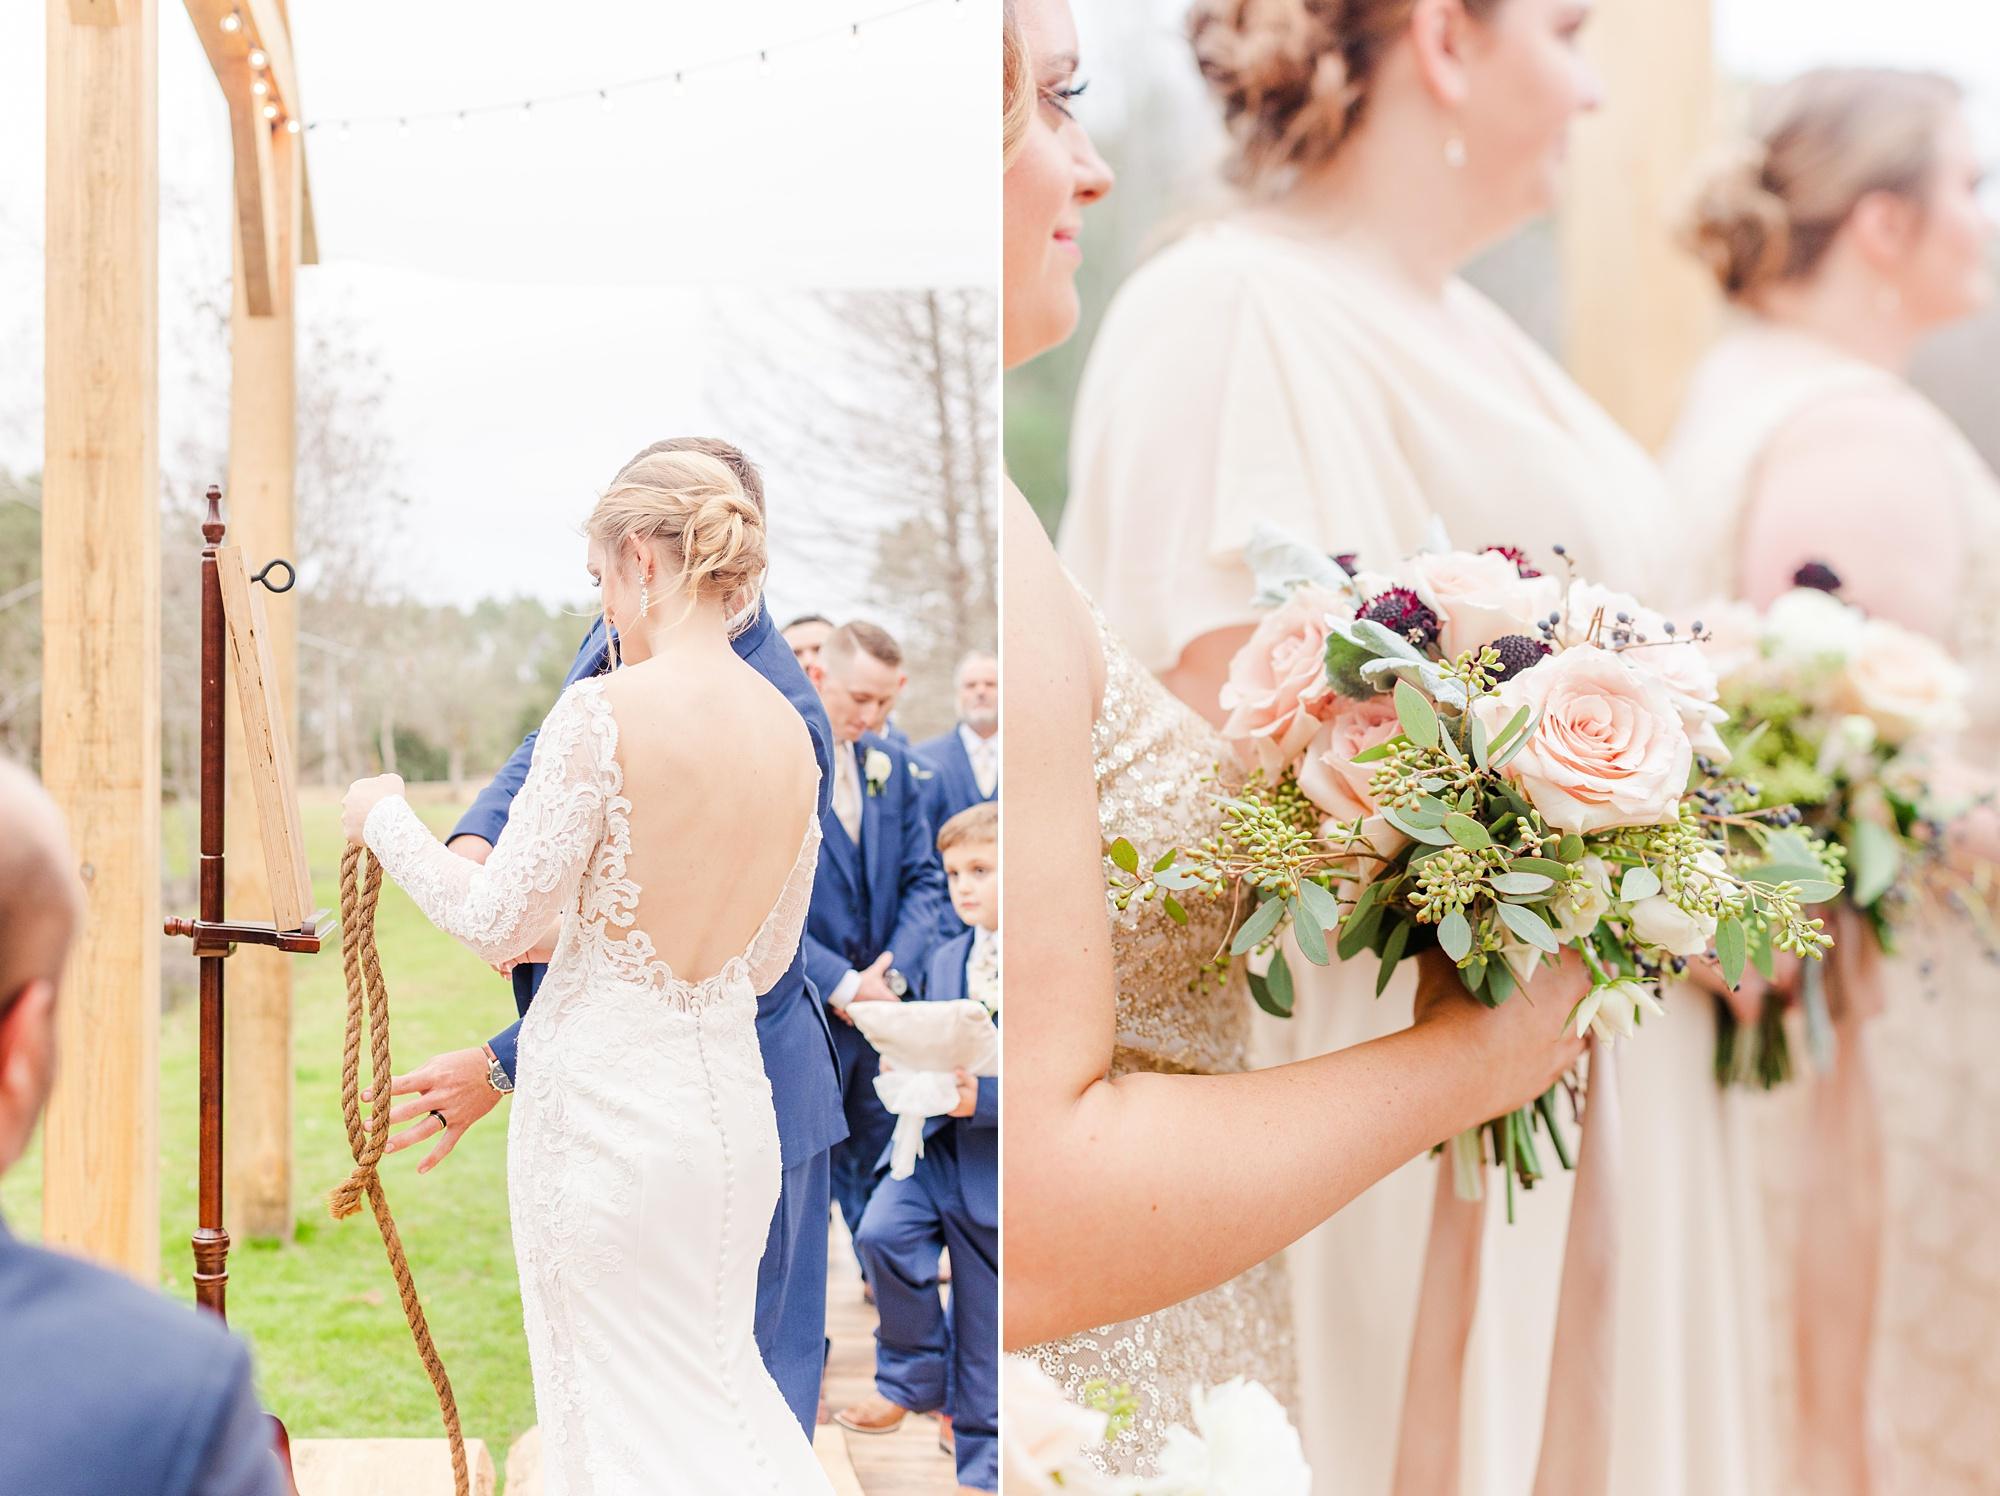 bride and groom tie knot